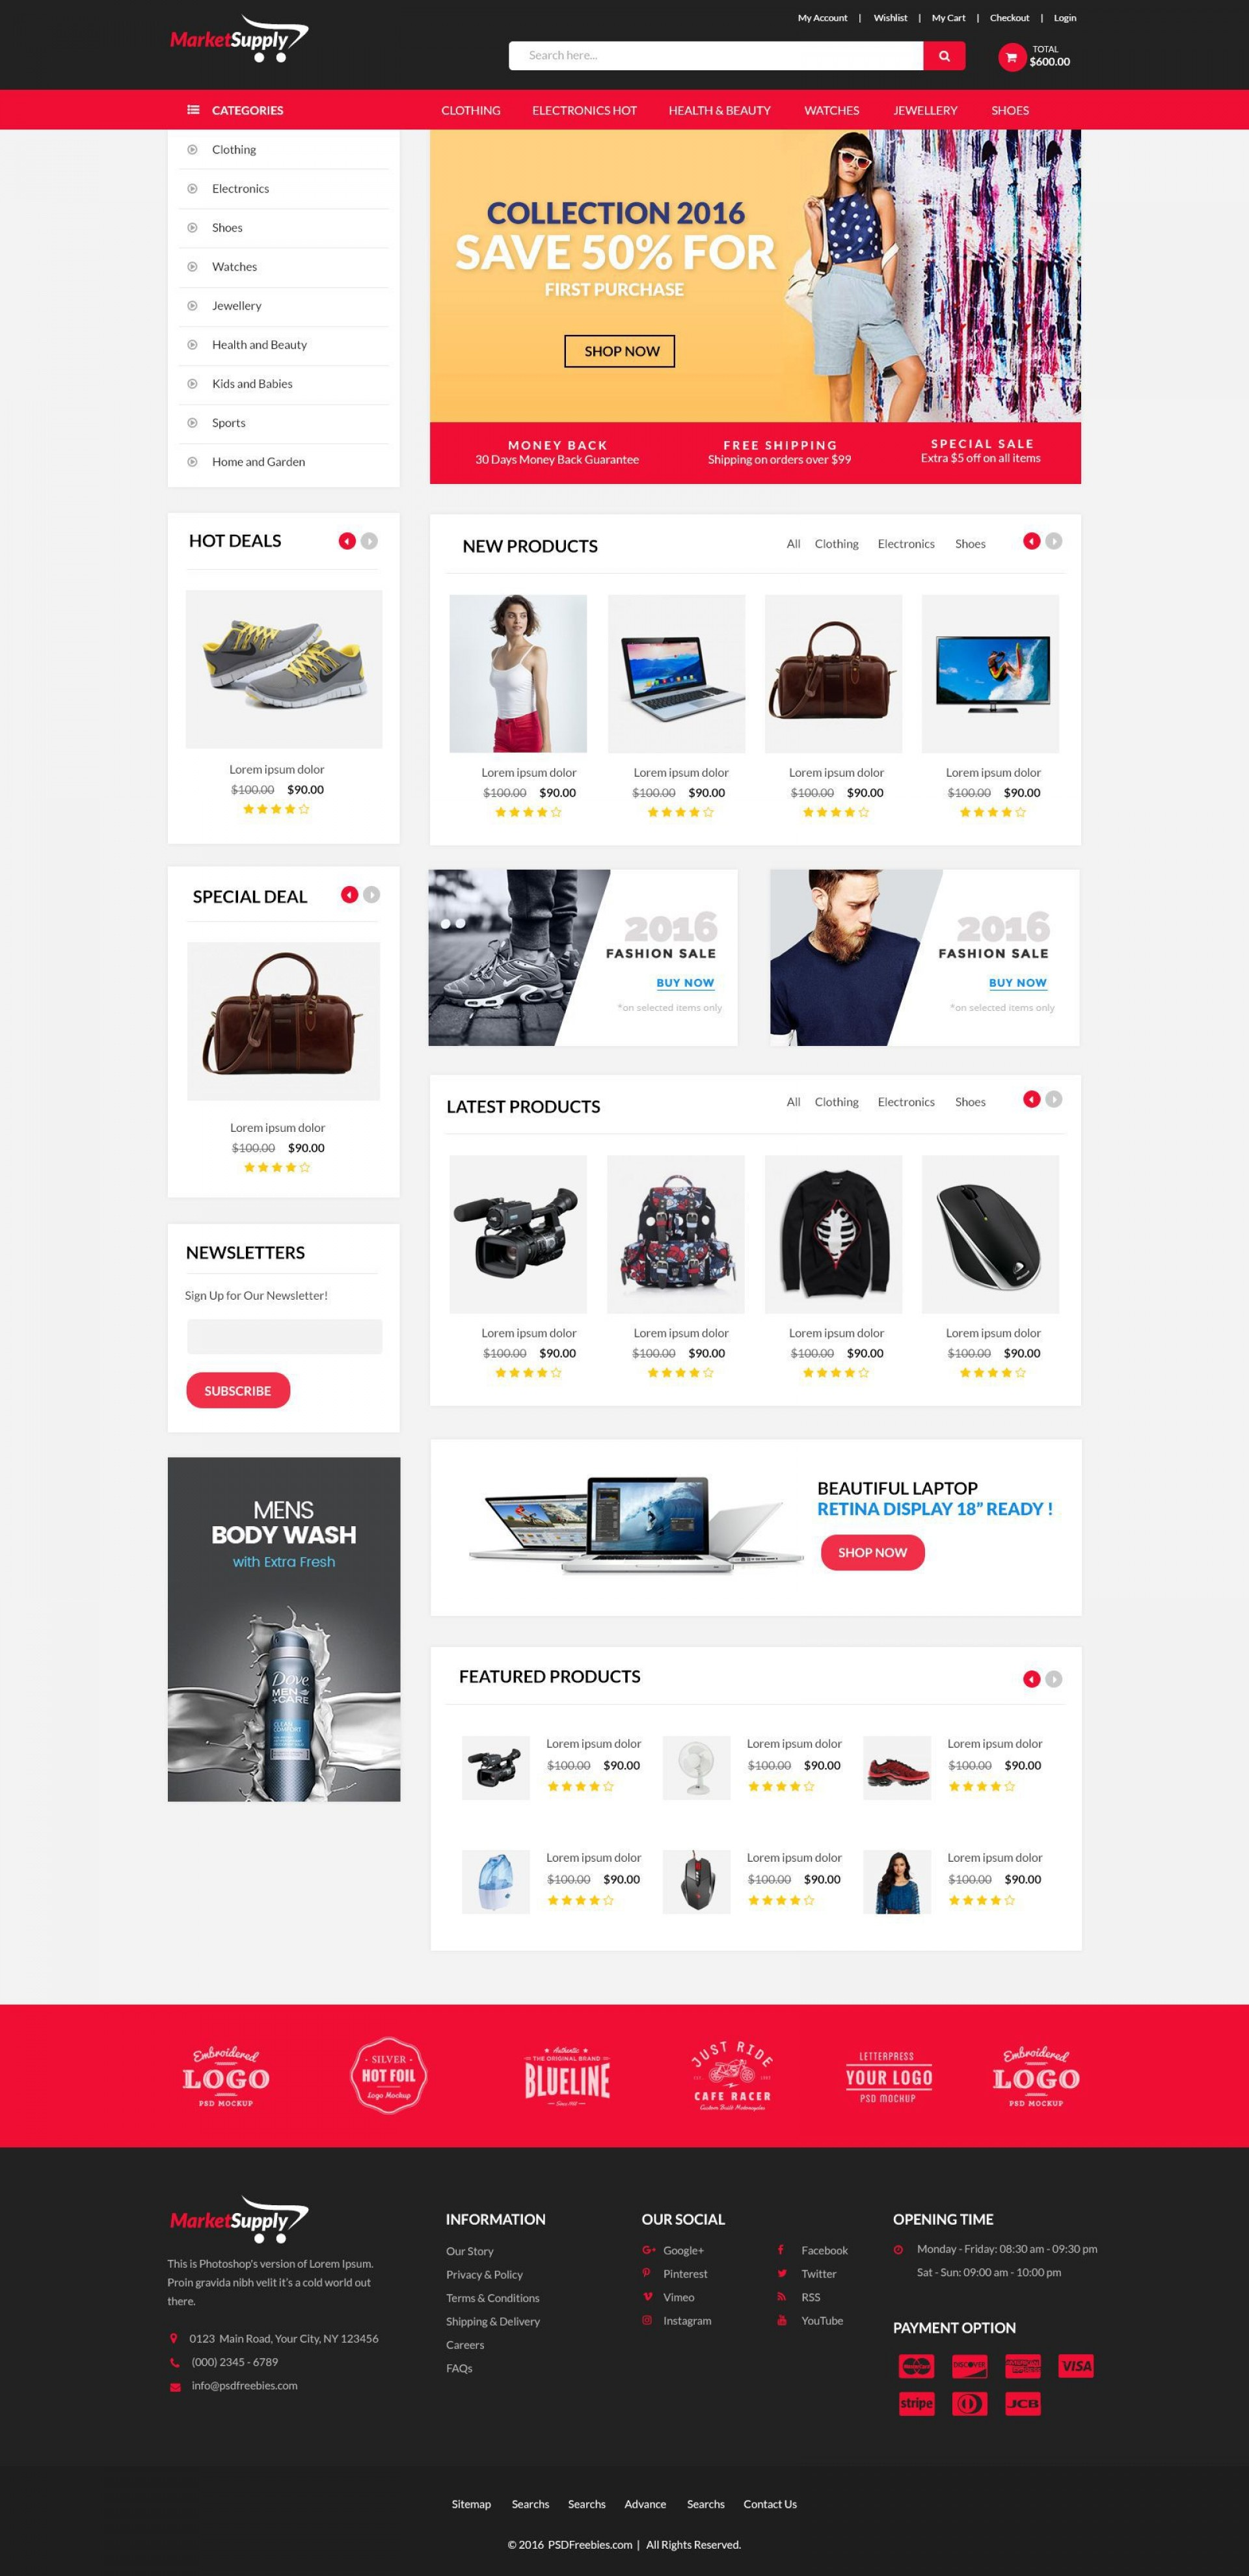 000 Shocking Free Php Website Template Idea  Download And Cs Full Theme1920